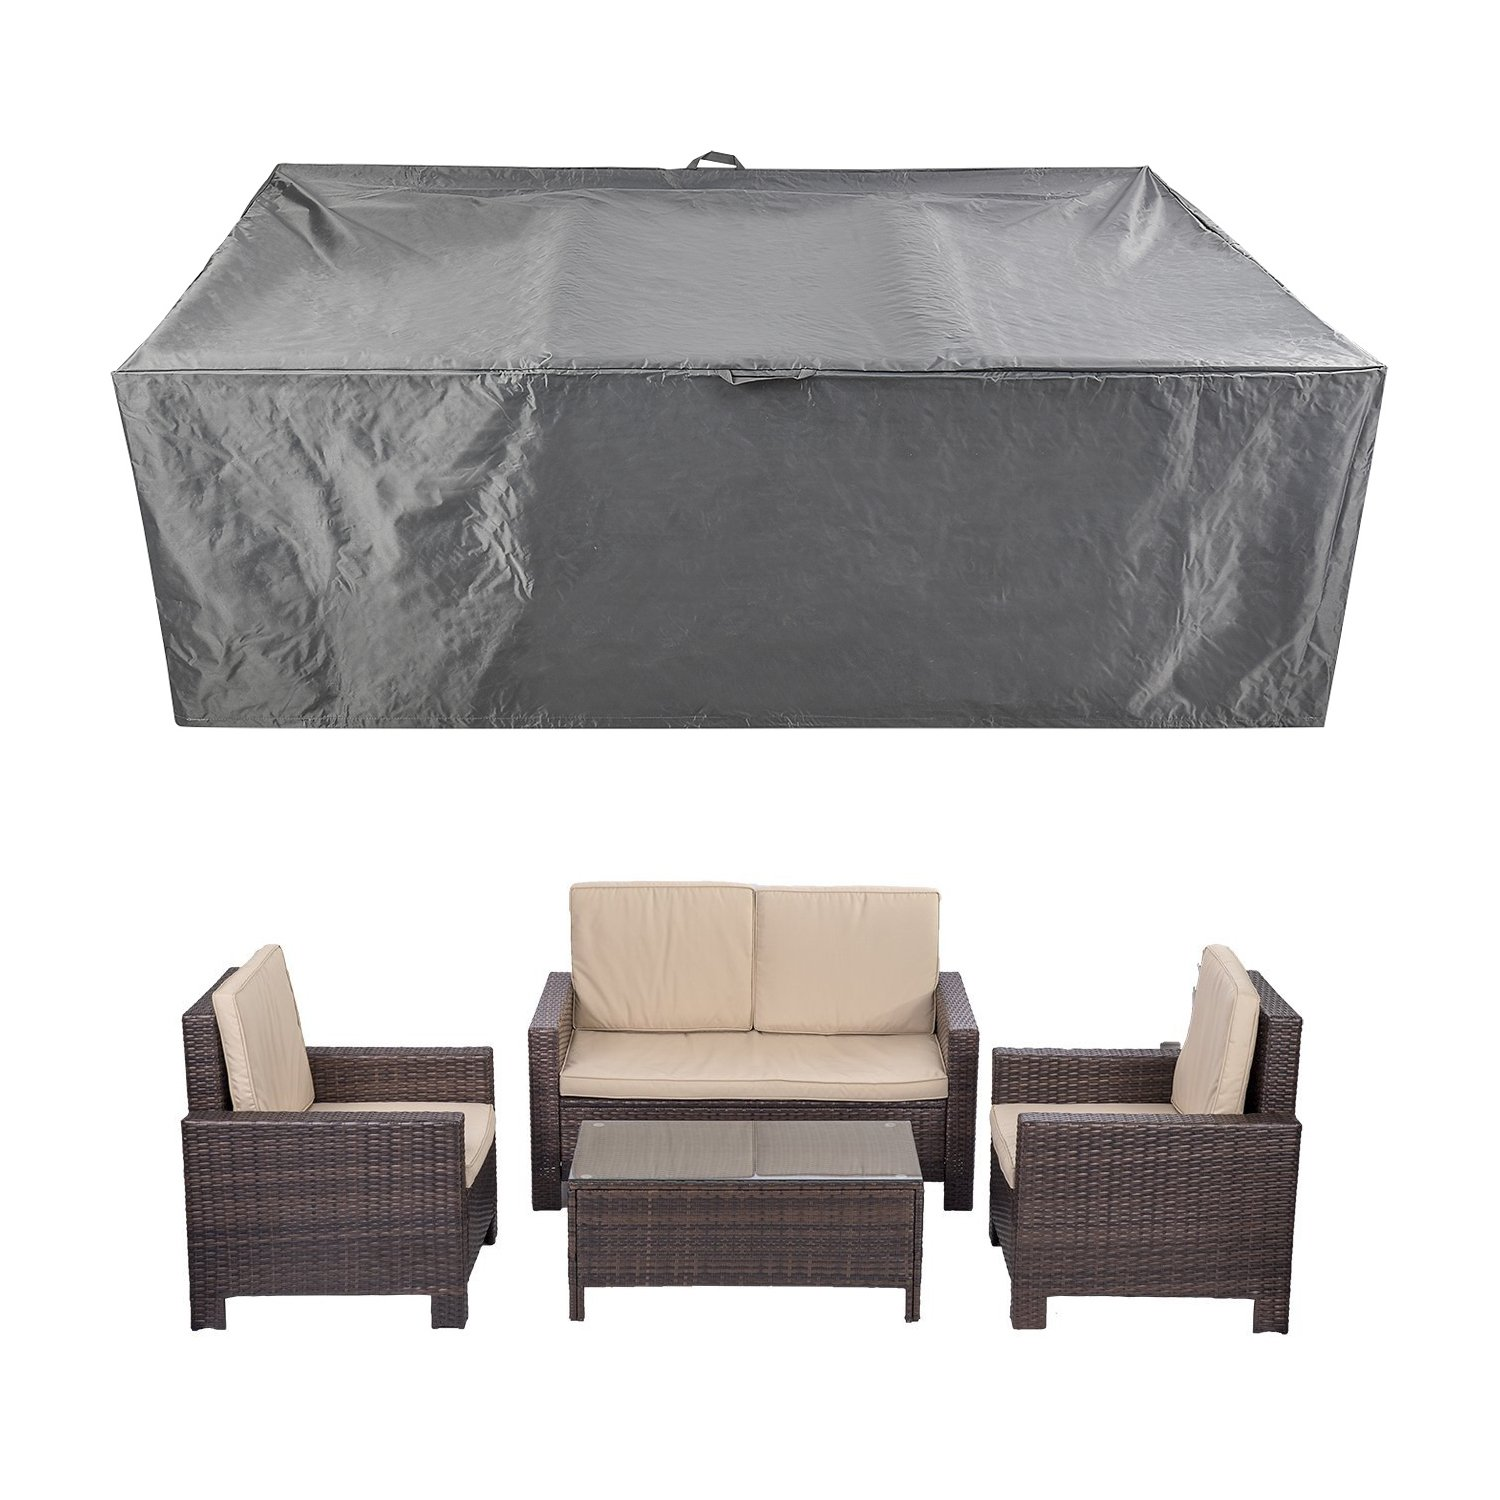 Amazon.com : Patio Furniture Set Covers Waterproof Outdoor Table and Chair  Covers Durable Heavy Duty 88